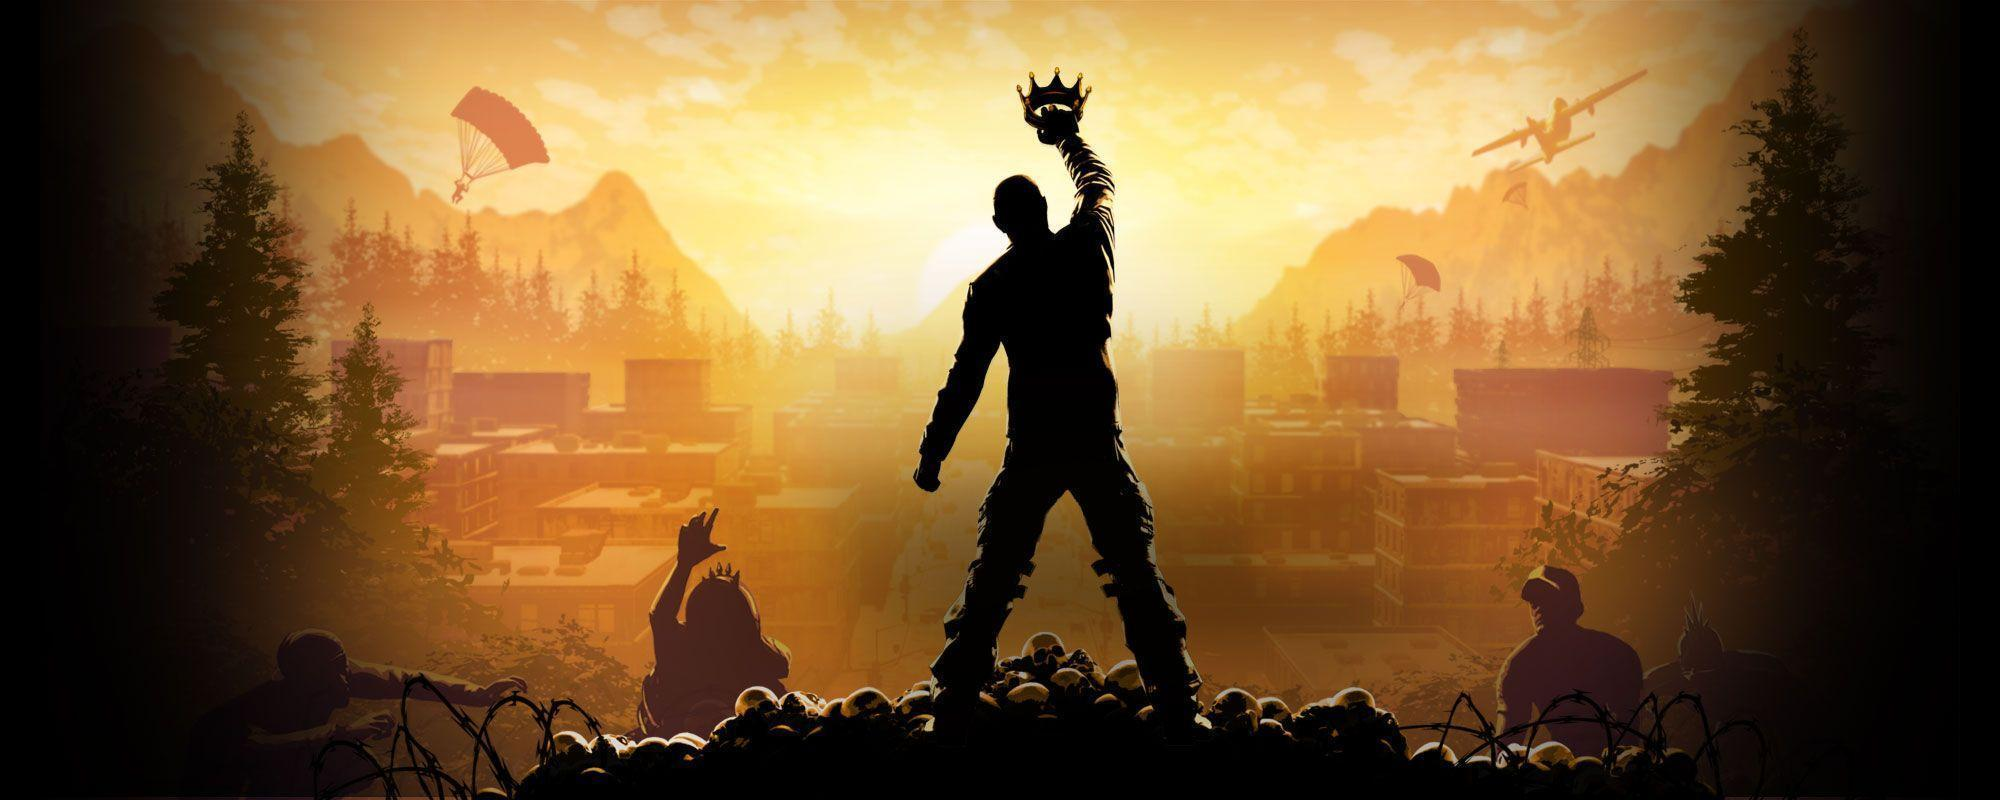 H1z1 King Of The Kill Wallpapers Wallpaper Cave